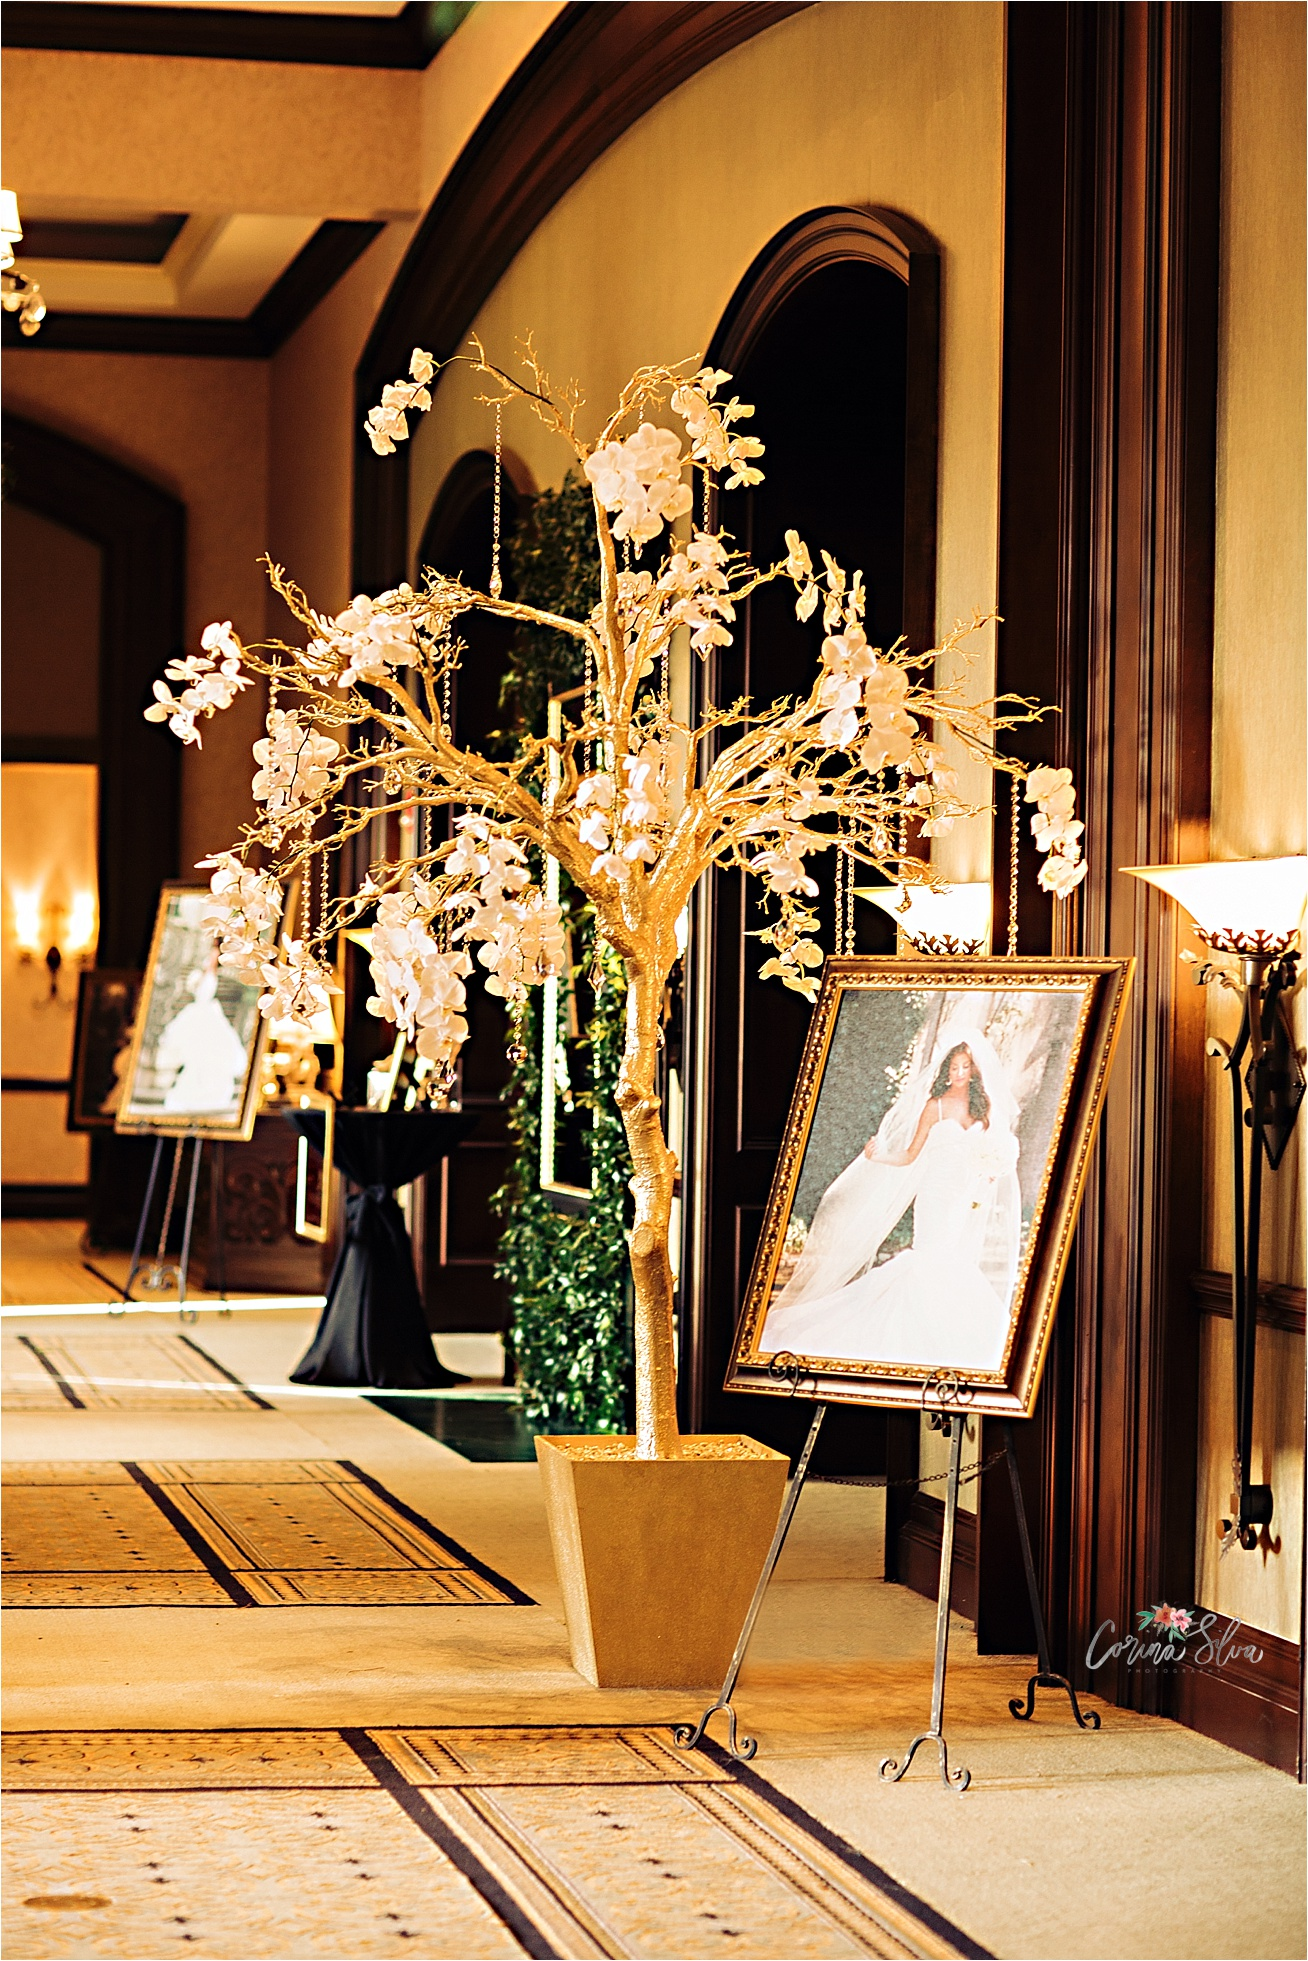 RSG-Event-and-Designs-luxury-wedding-decor-photos, Corina-Silva-Studios_0013.jpg